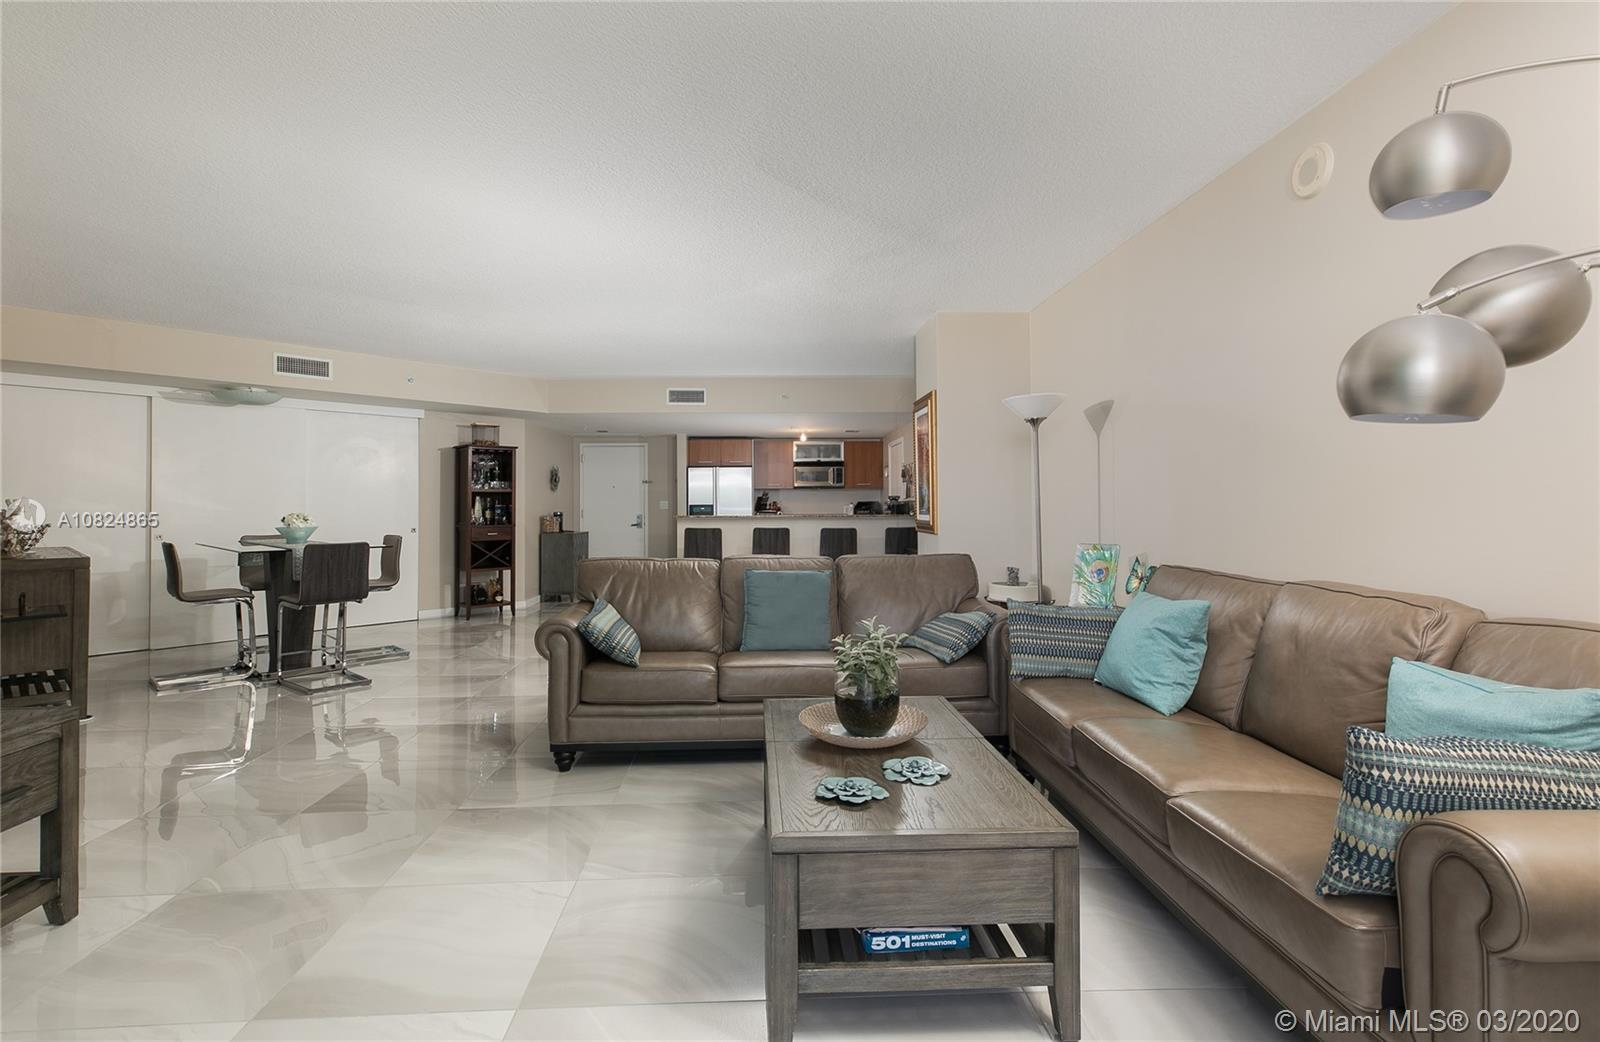 Tastefully remodeled 2/2 in luxurious building with striking views of the city is an elevator ride a